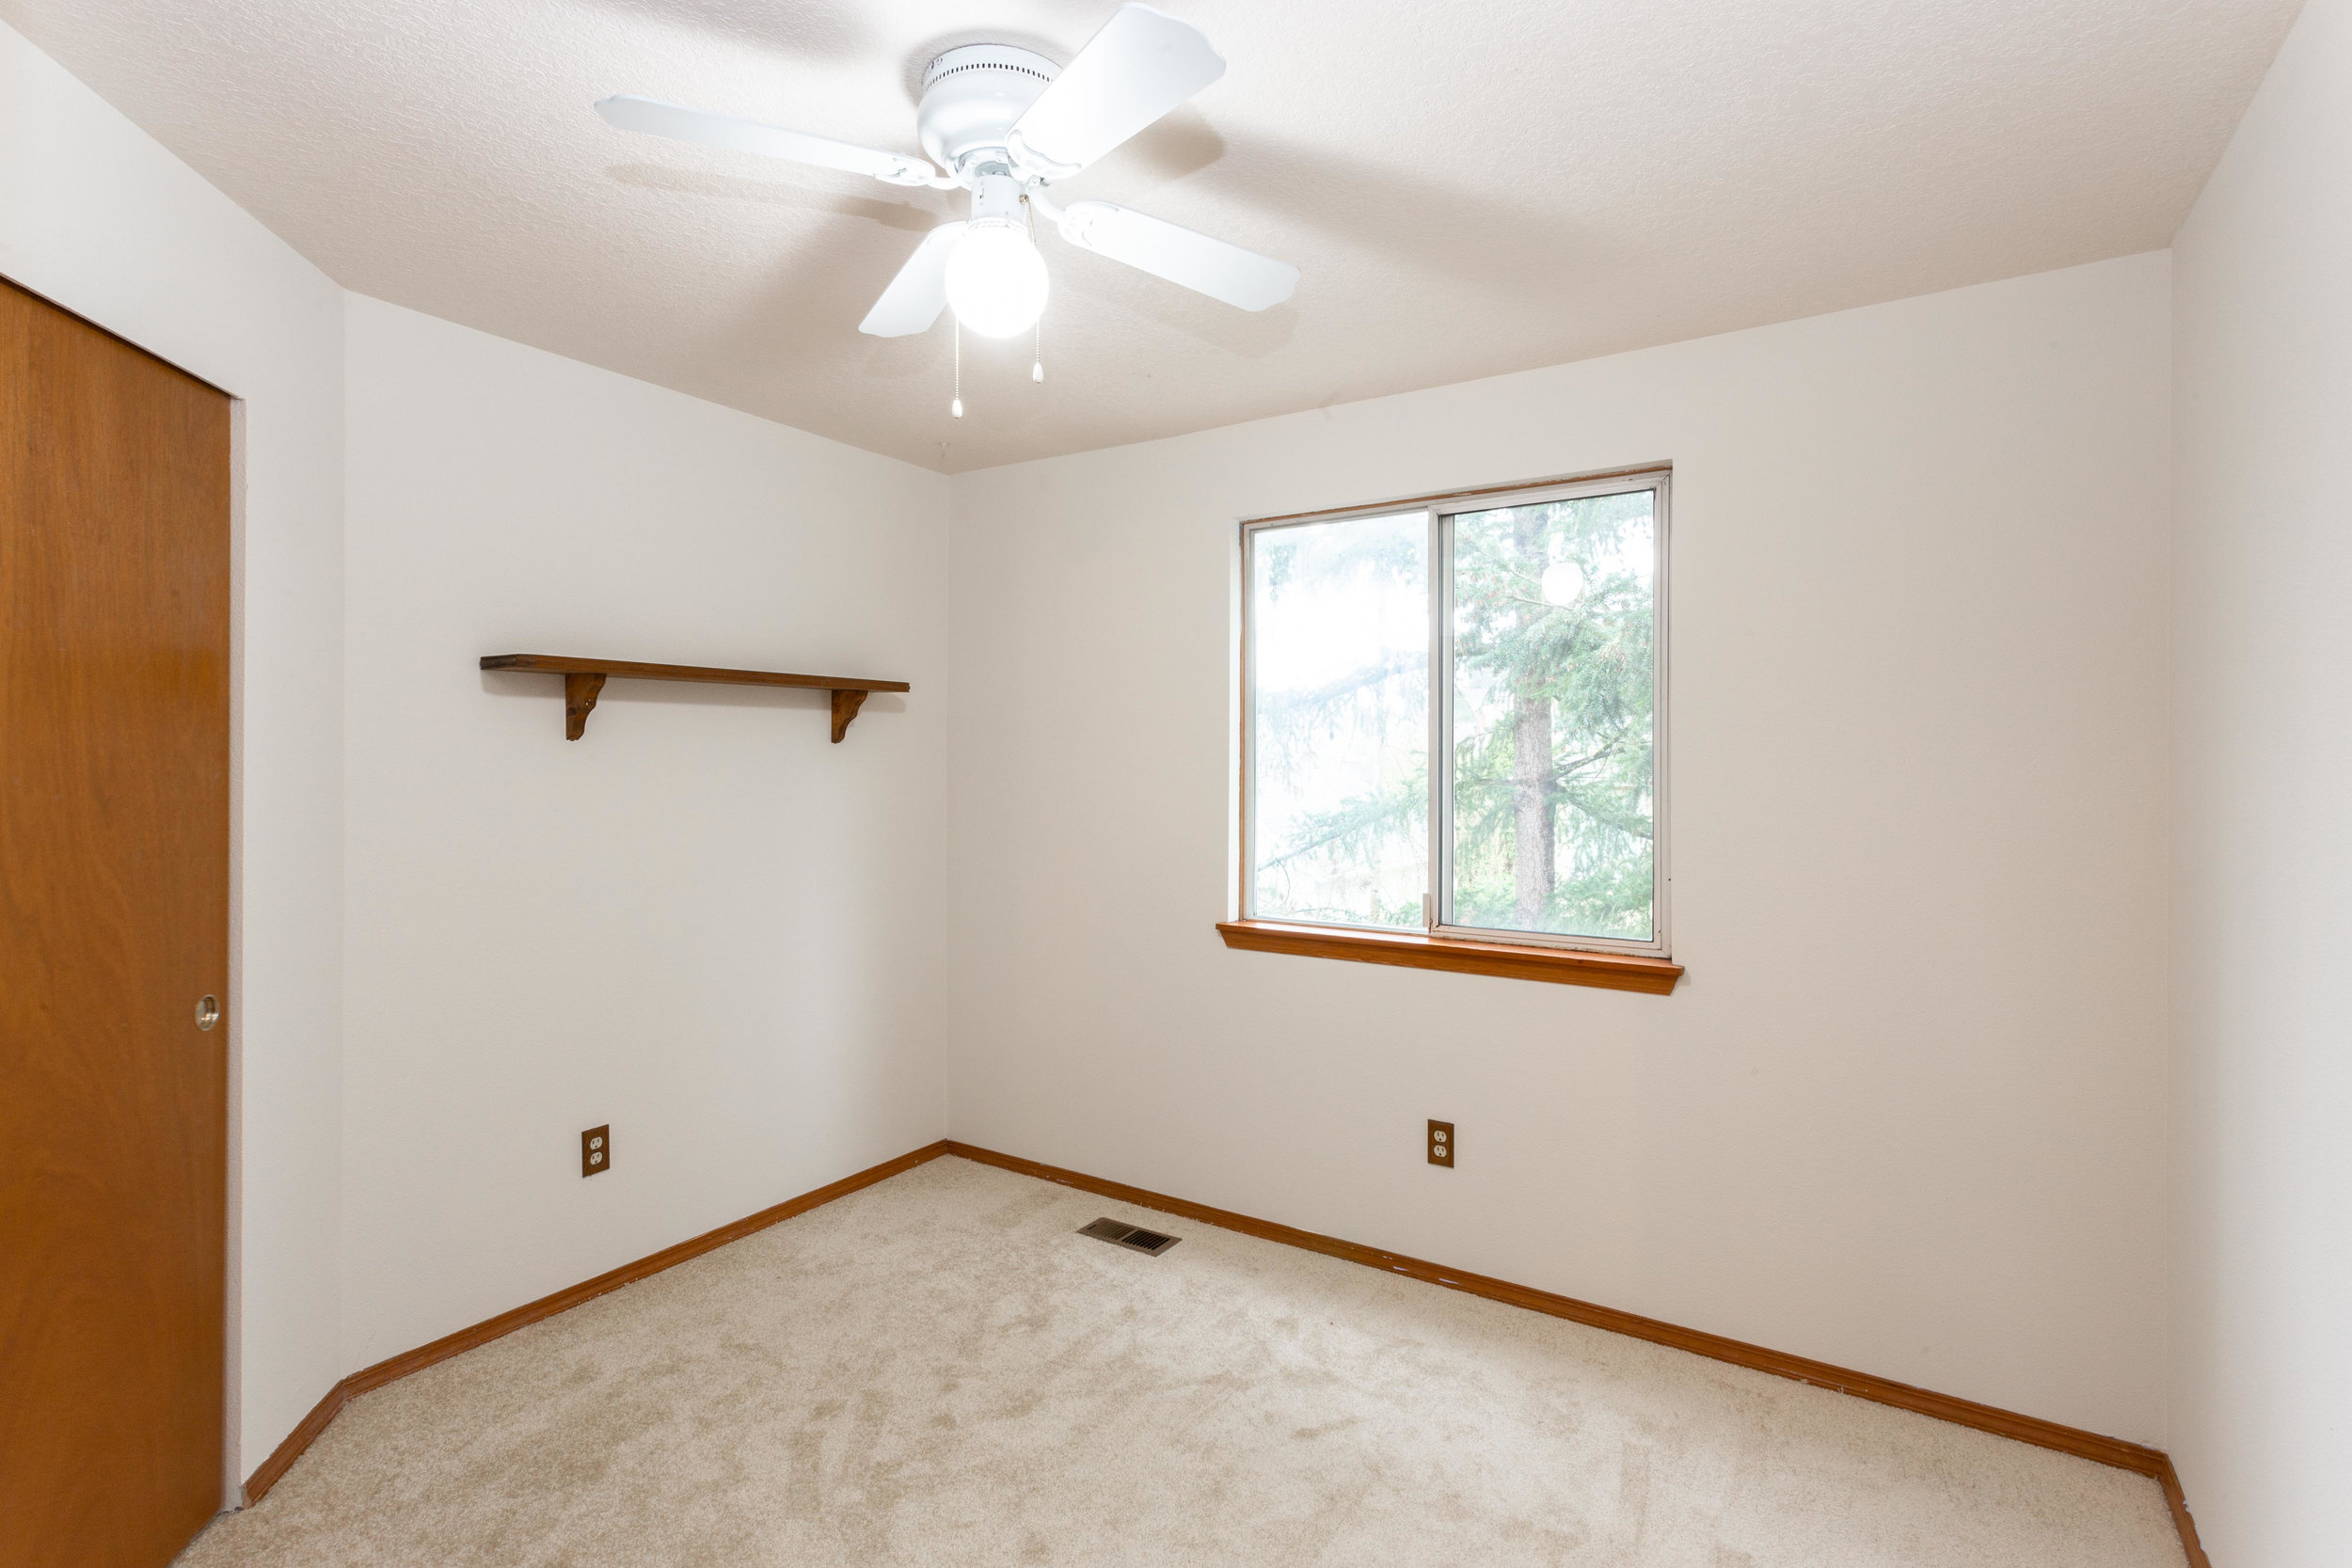 Upstairs bedrooms and hall bath are clean and ready for you to pick your colors (or not, and just leave them white!)